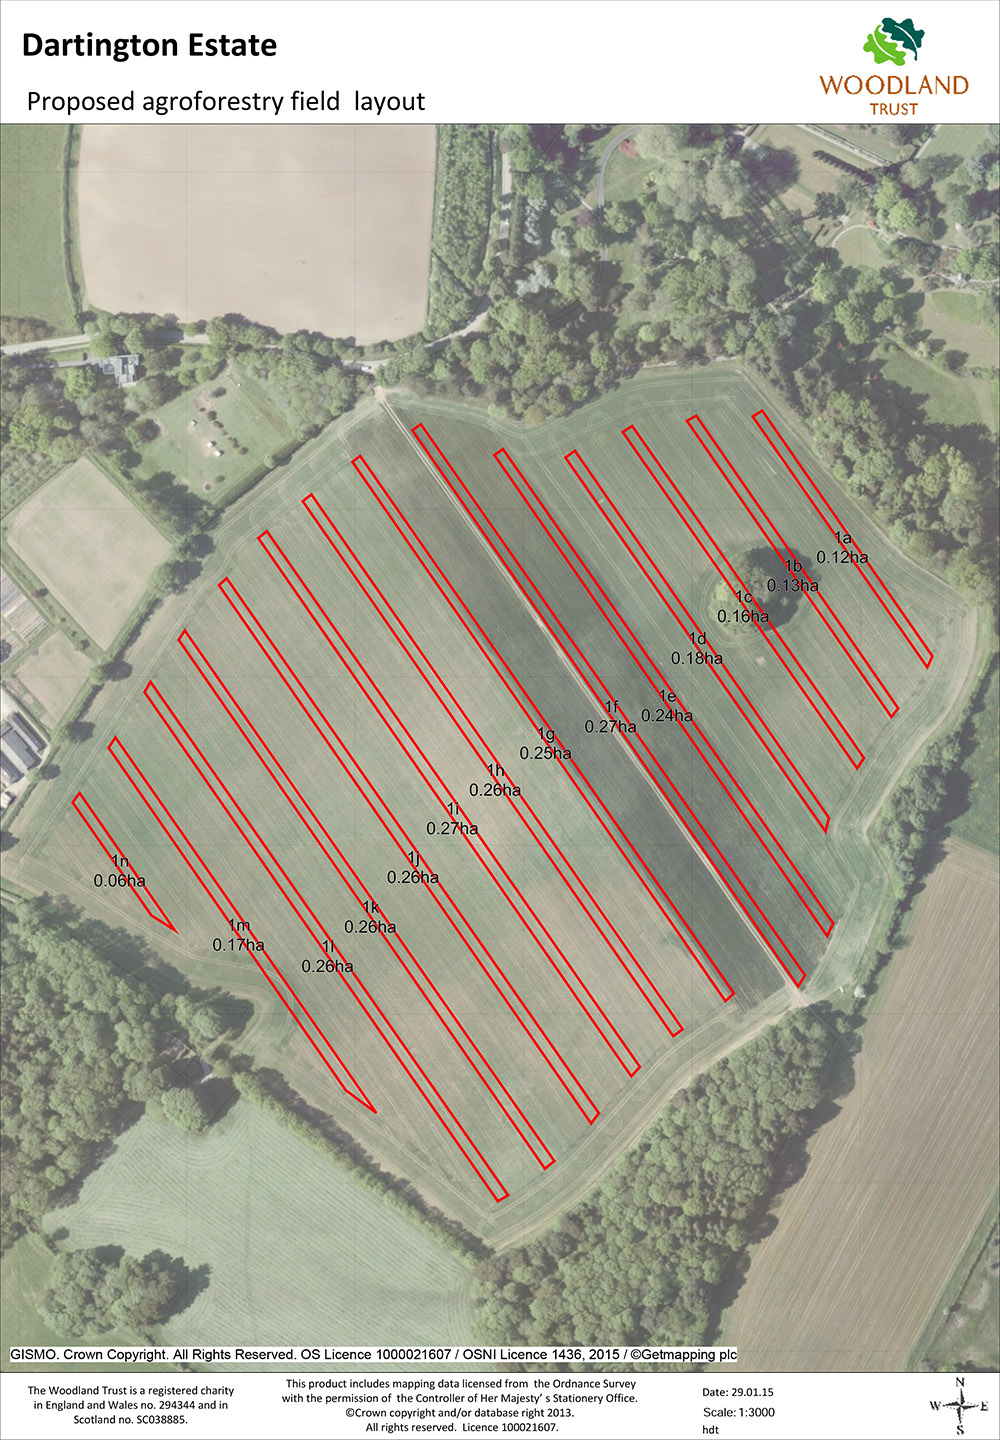 Agroforestry field proposed layout